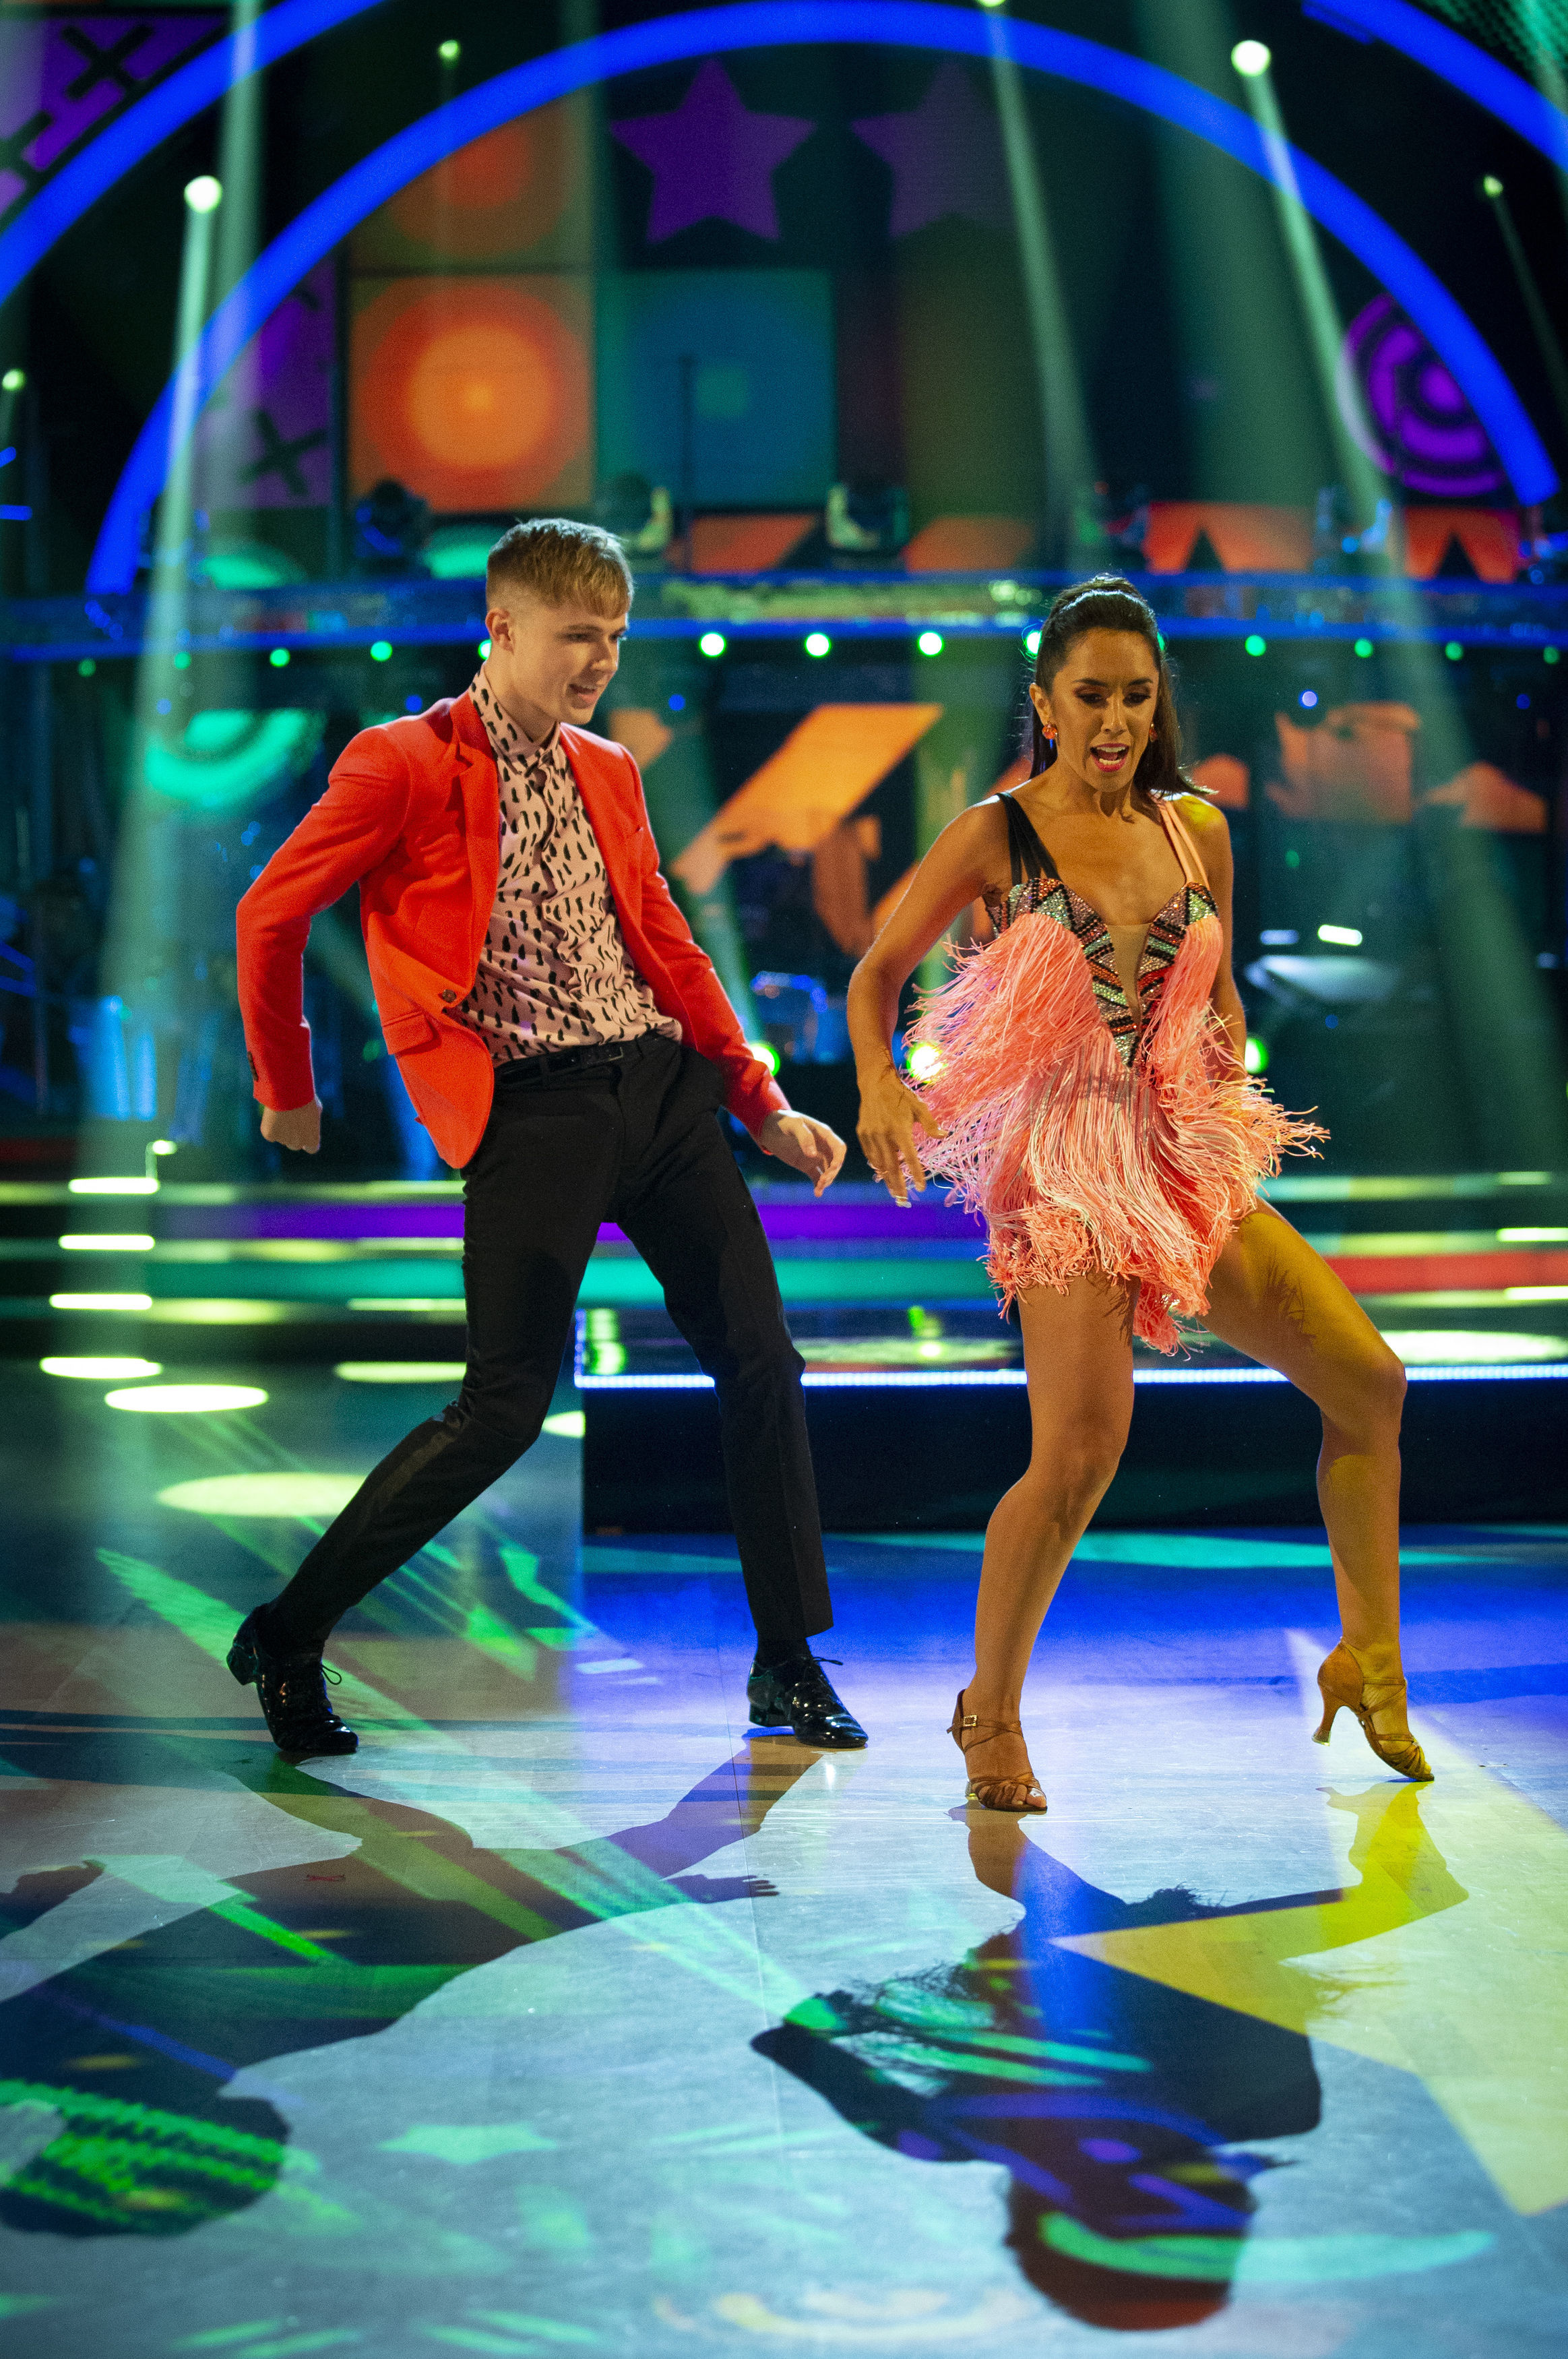 HRVY also impressed the judges with his moves